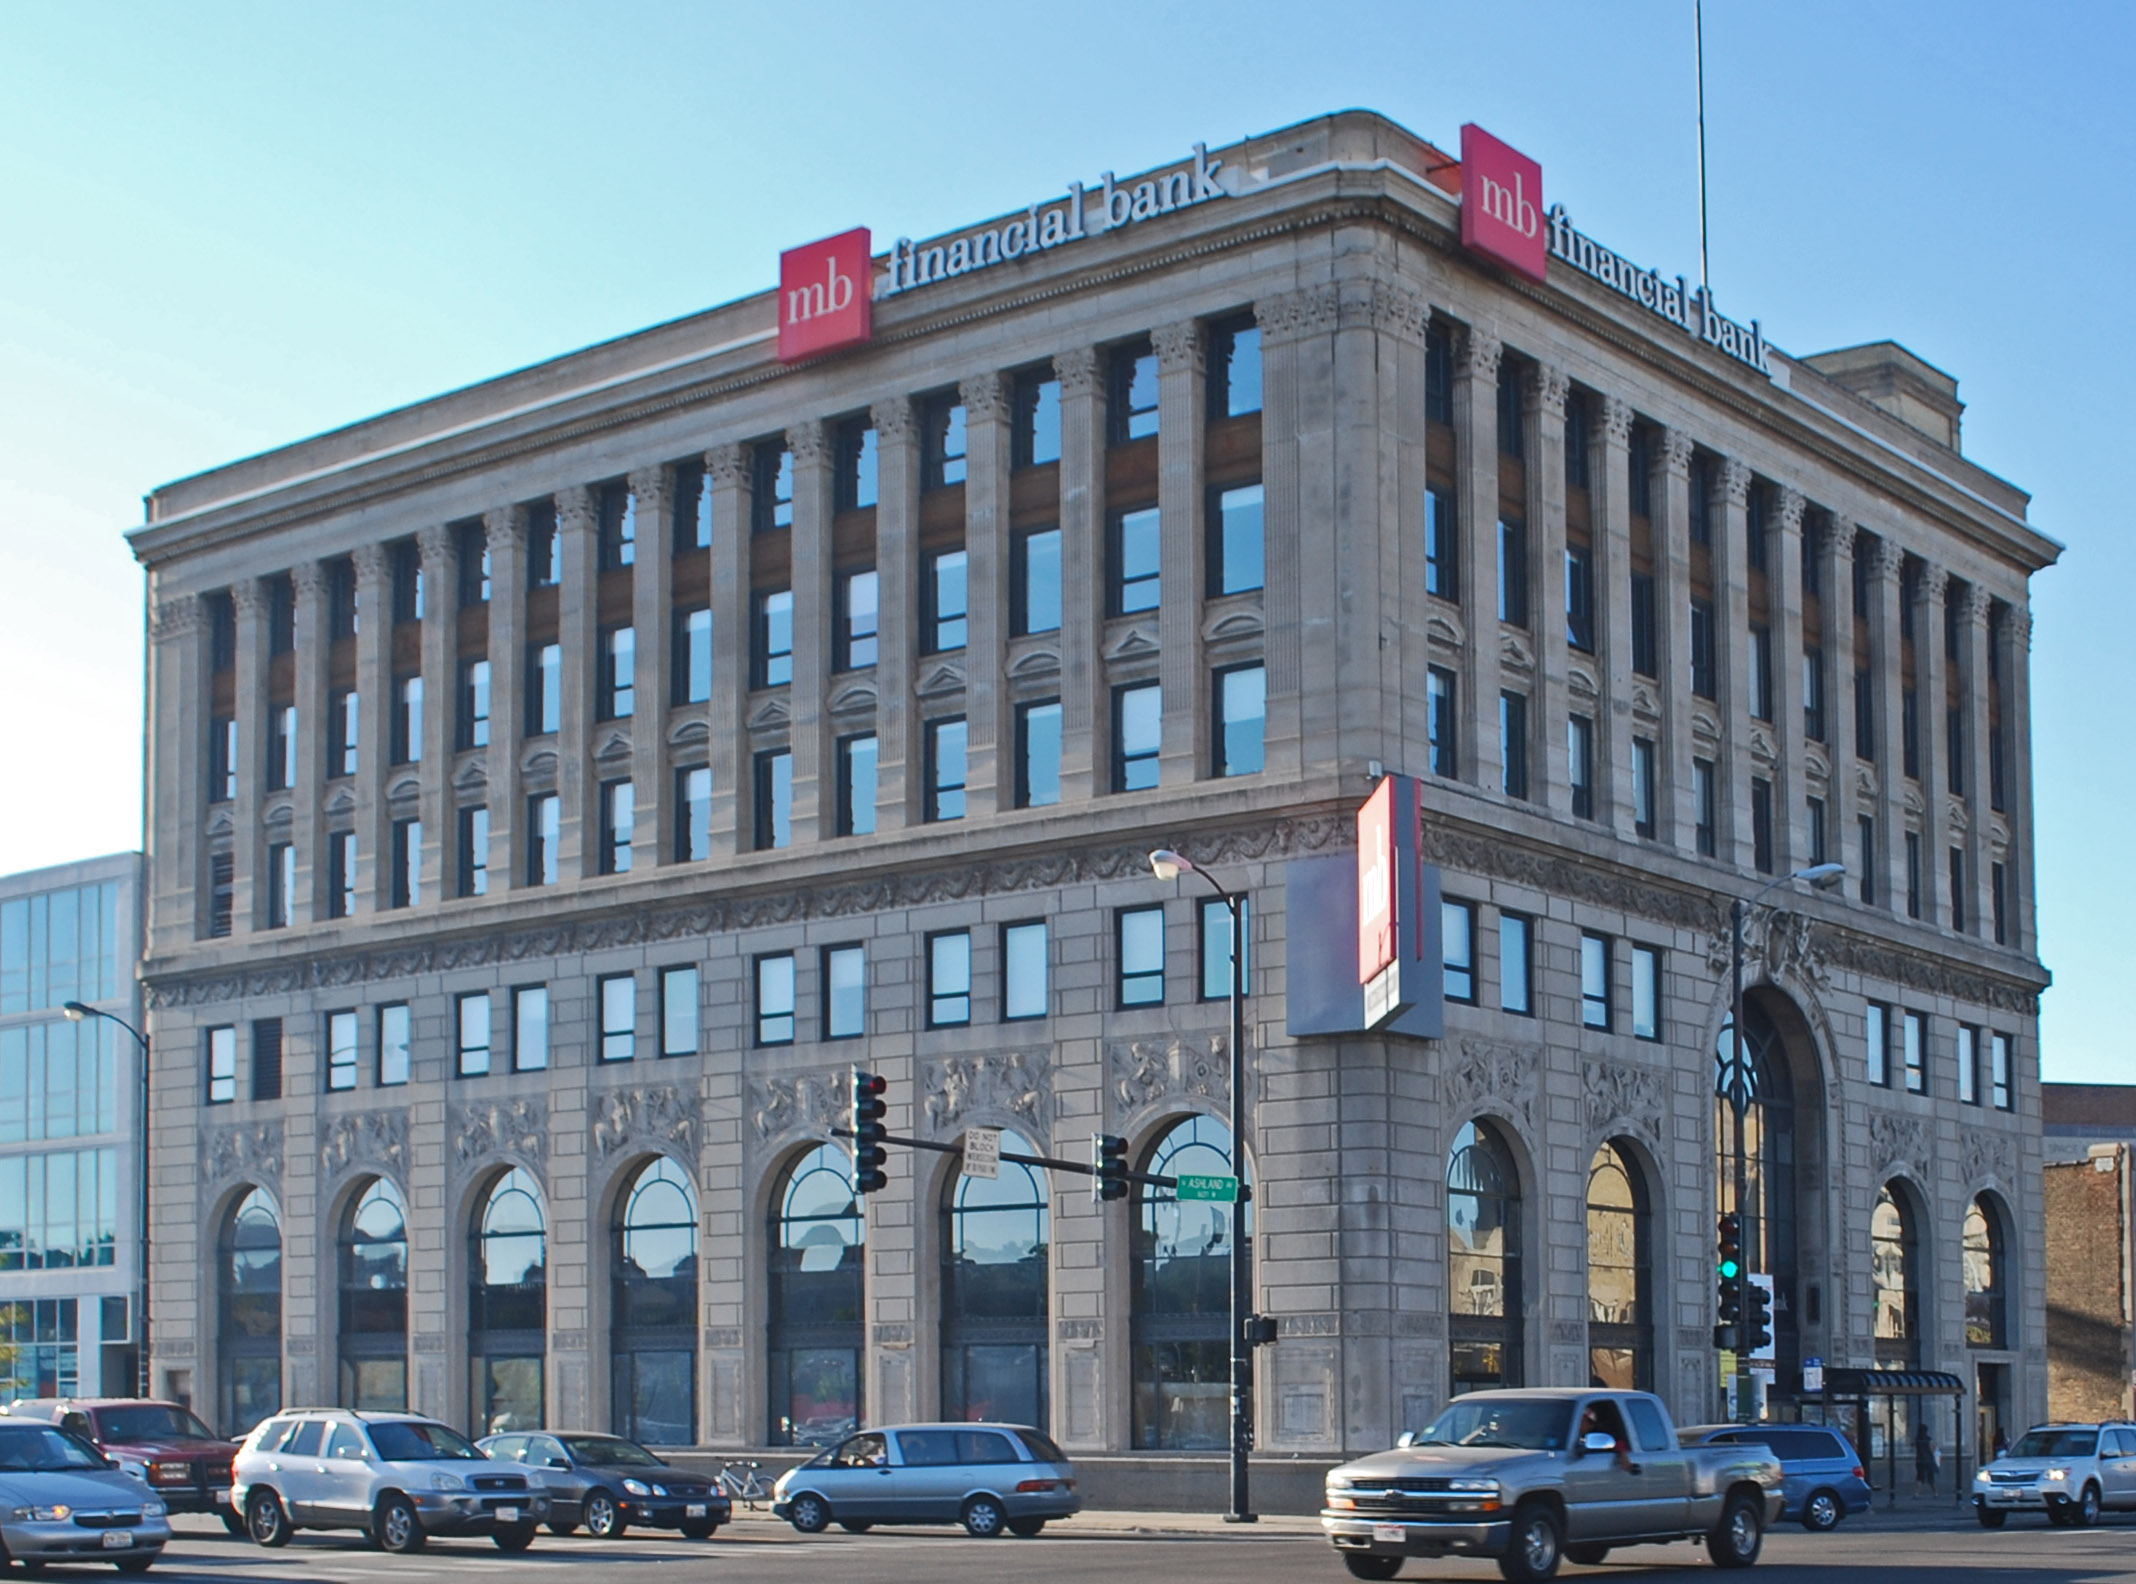 FileHome Bank and Trust pany Chicago ILg Wikimedia mons